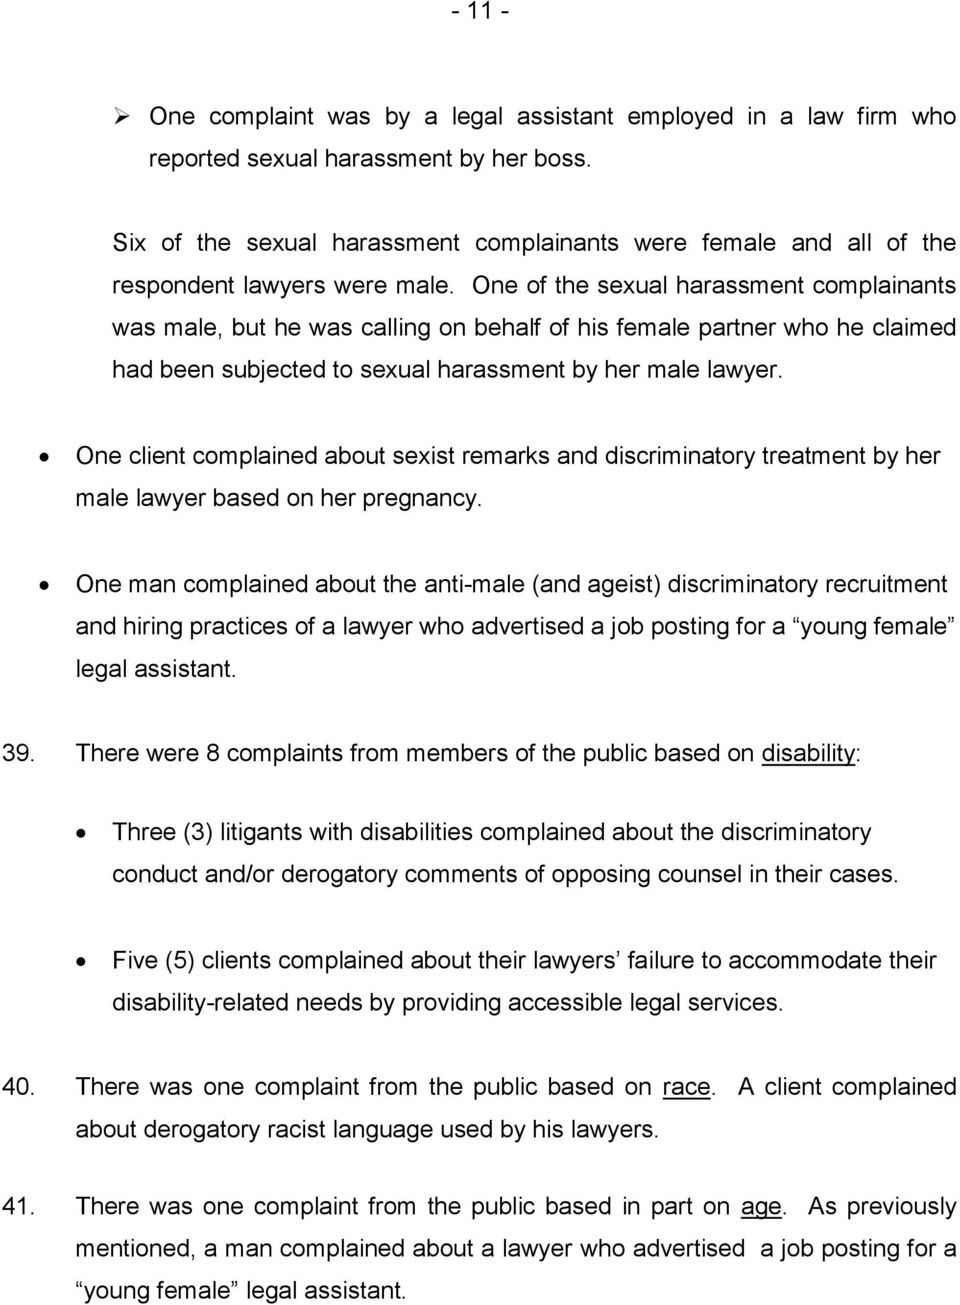 One of the sexual harassment complainants was male, but he was calling on behalf of his female partner who he claimed had been subjected to sexual harassment by her male lawyer.